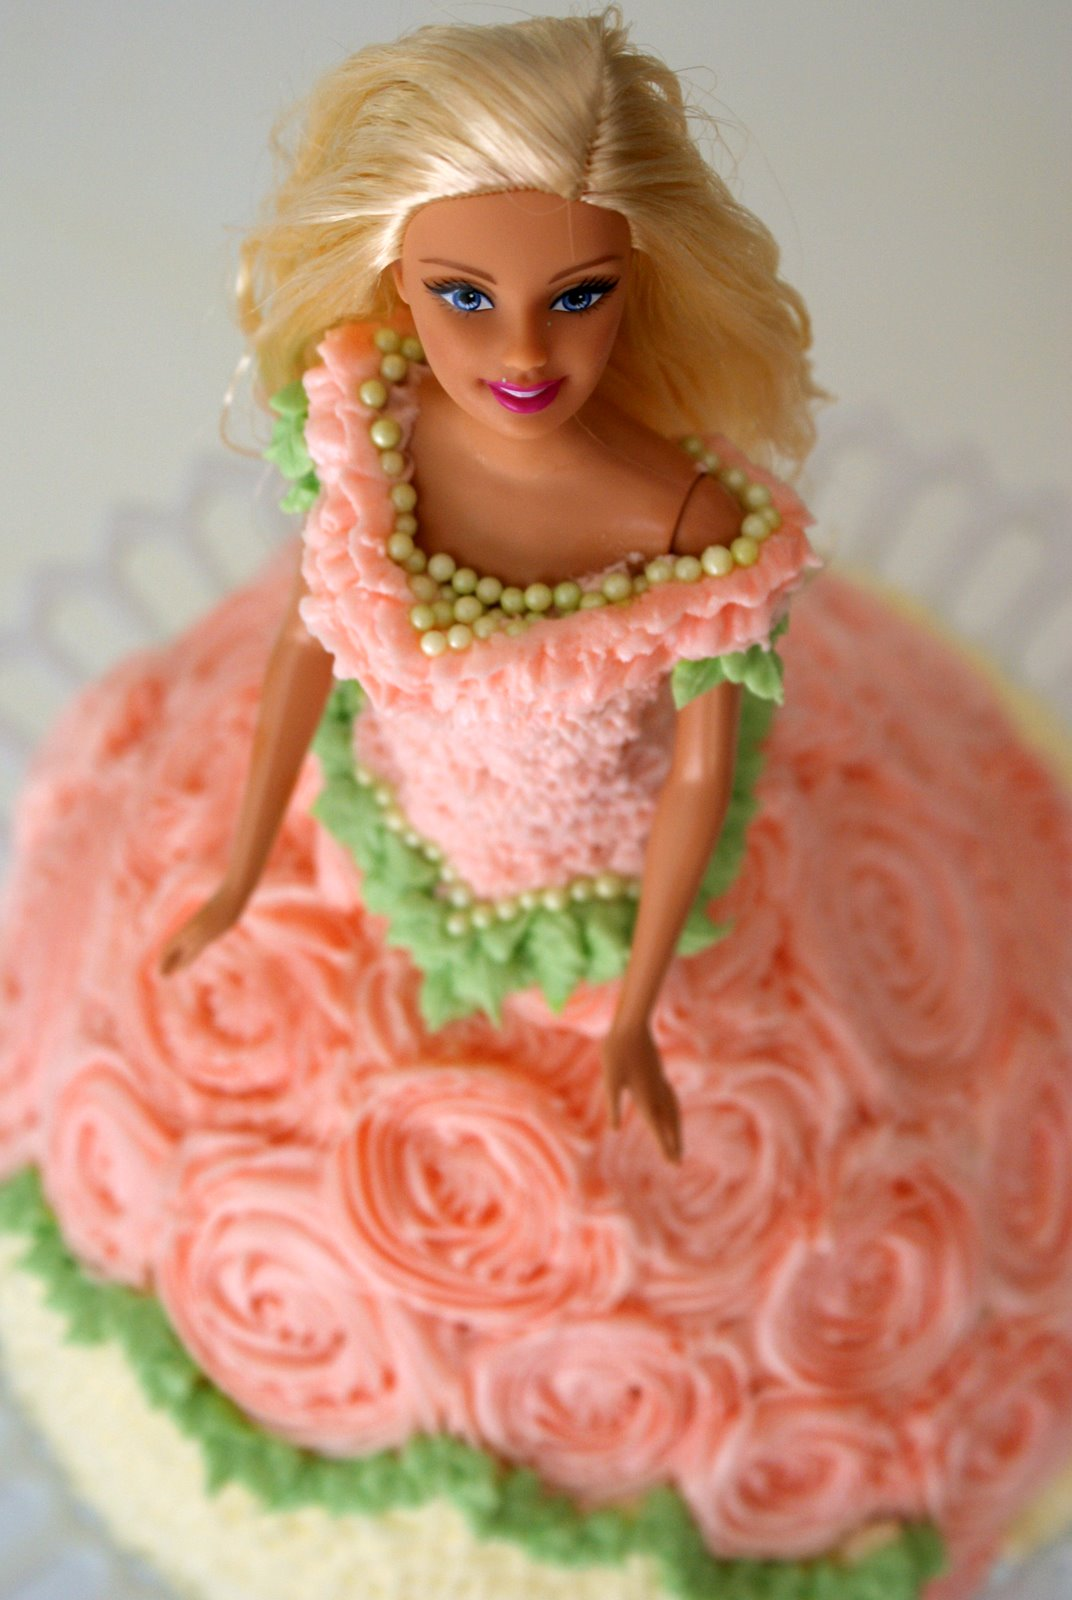 A Little Loveliness: Barbie Doll Cake